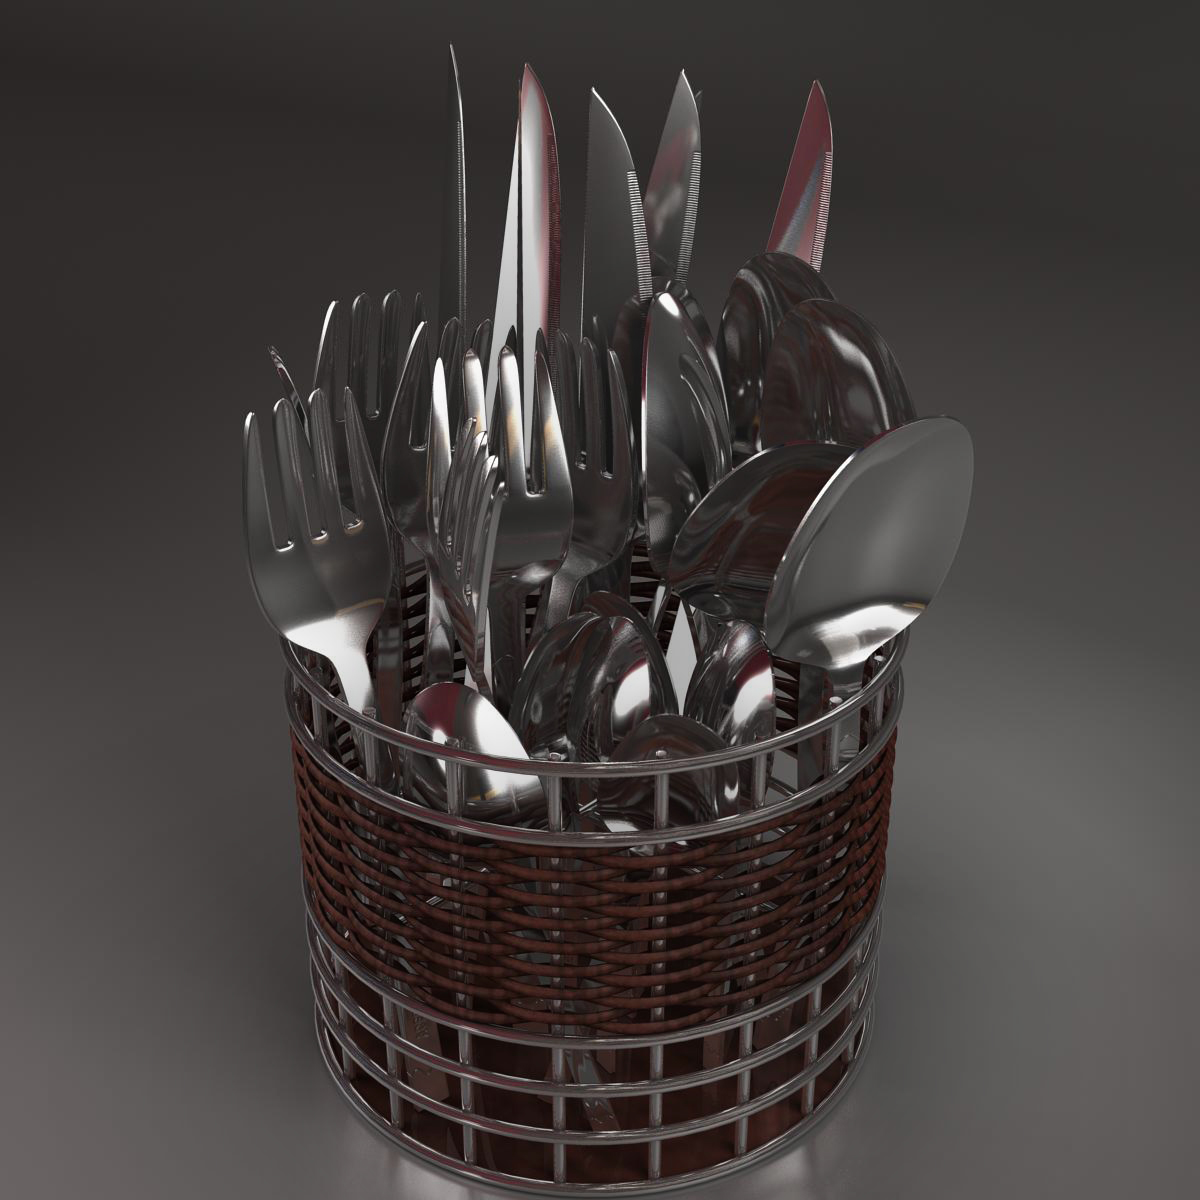 cutlery box 3d model 3ds max fbx c4d ma mb obj 159052